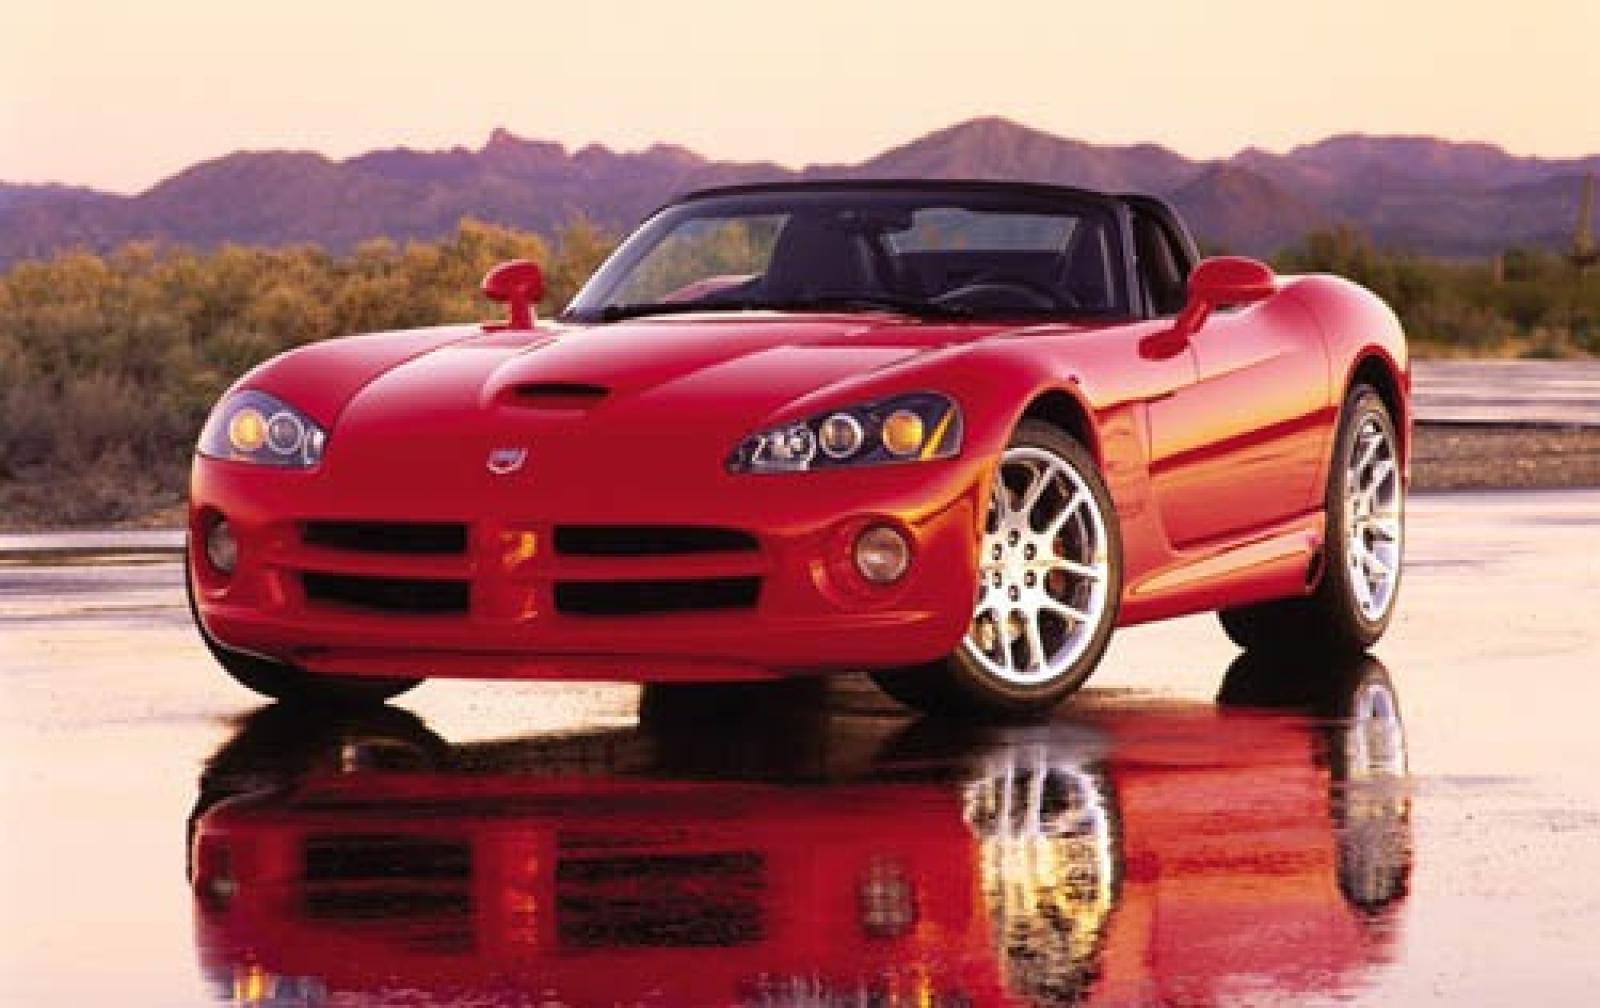 2005 dodge viper information and photos zombiedrive rh zombdrive com 2009 Dodge Viper 2017 Dodge Viper